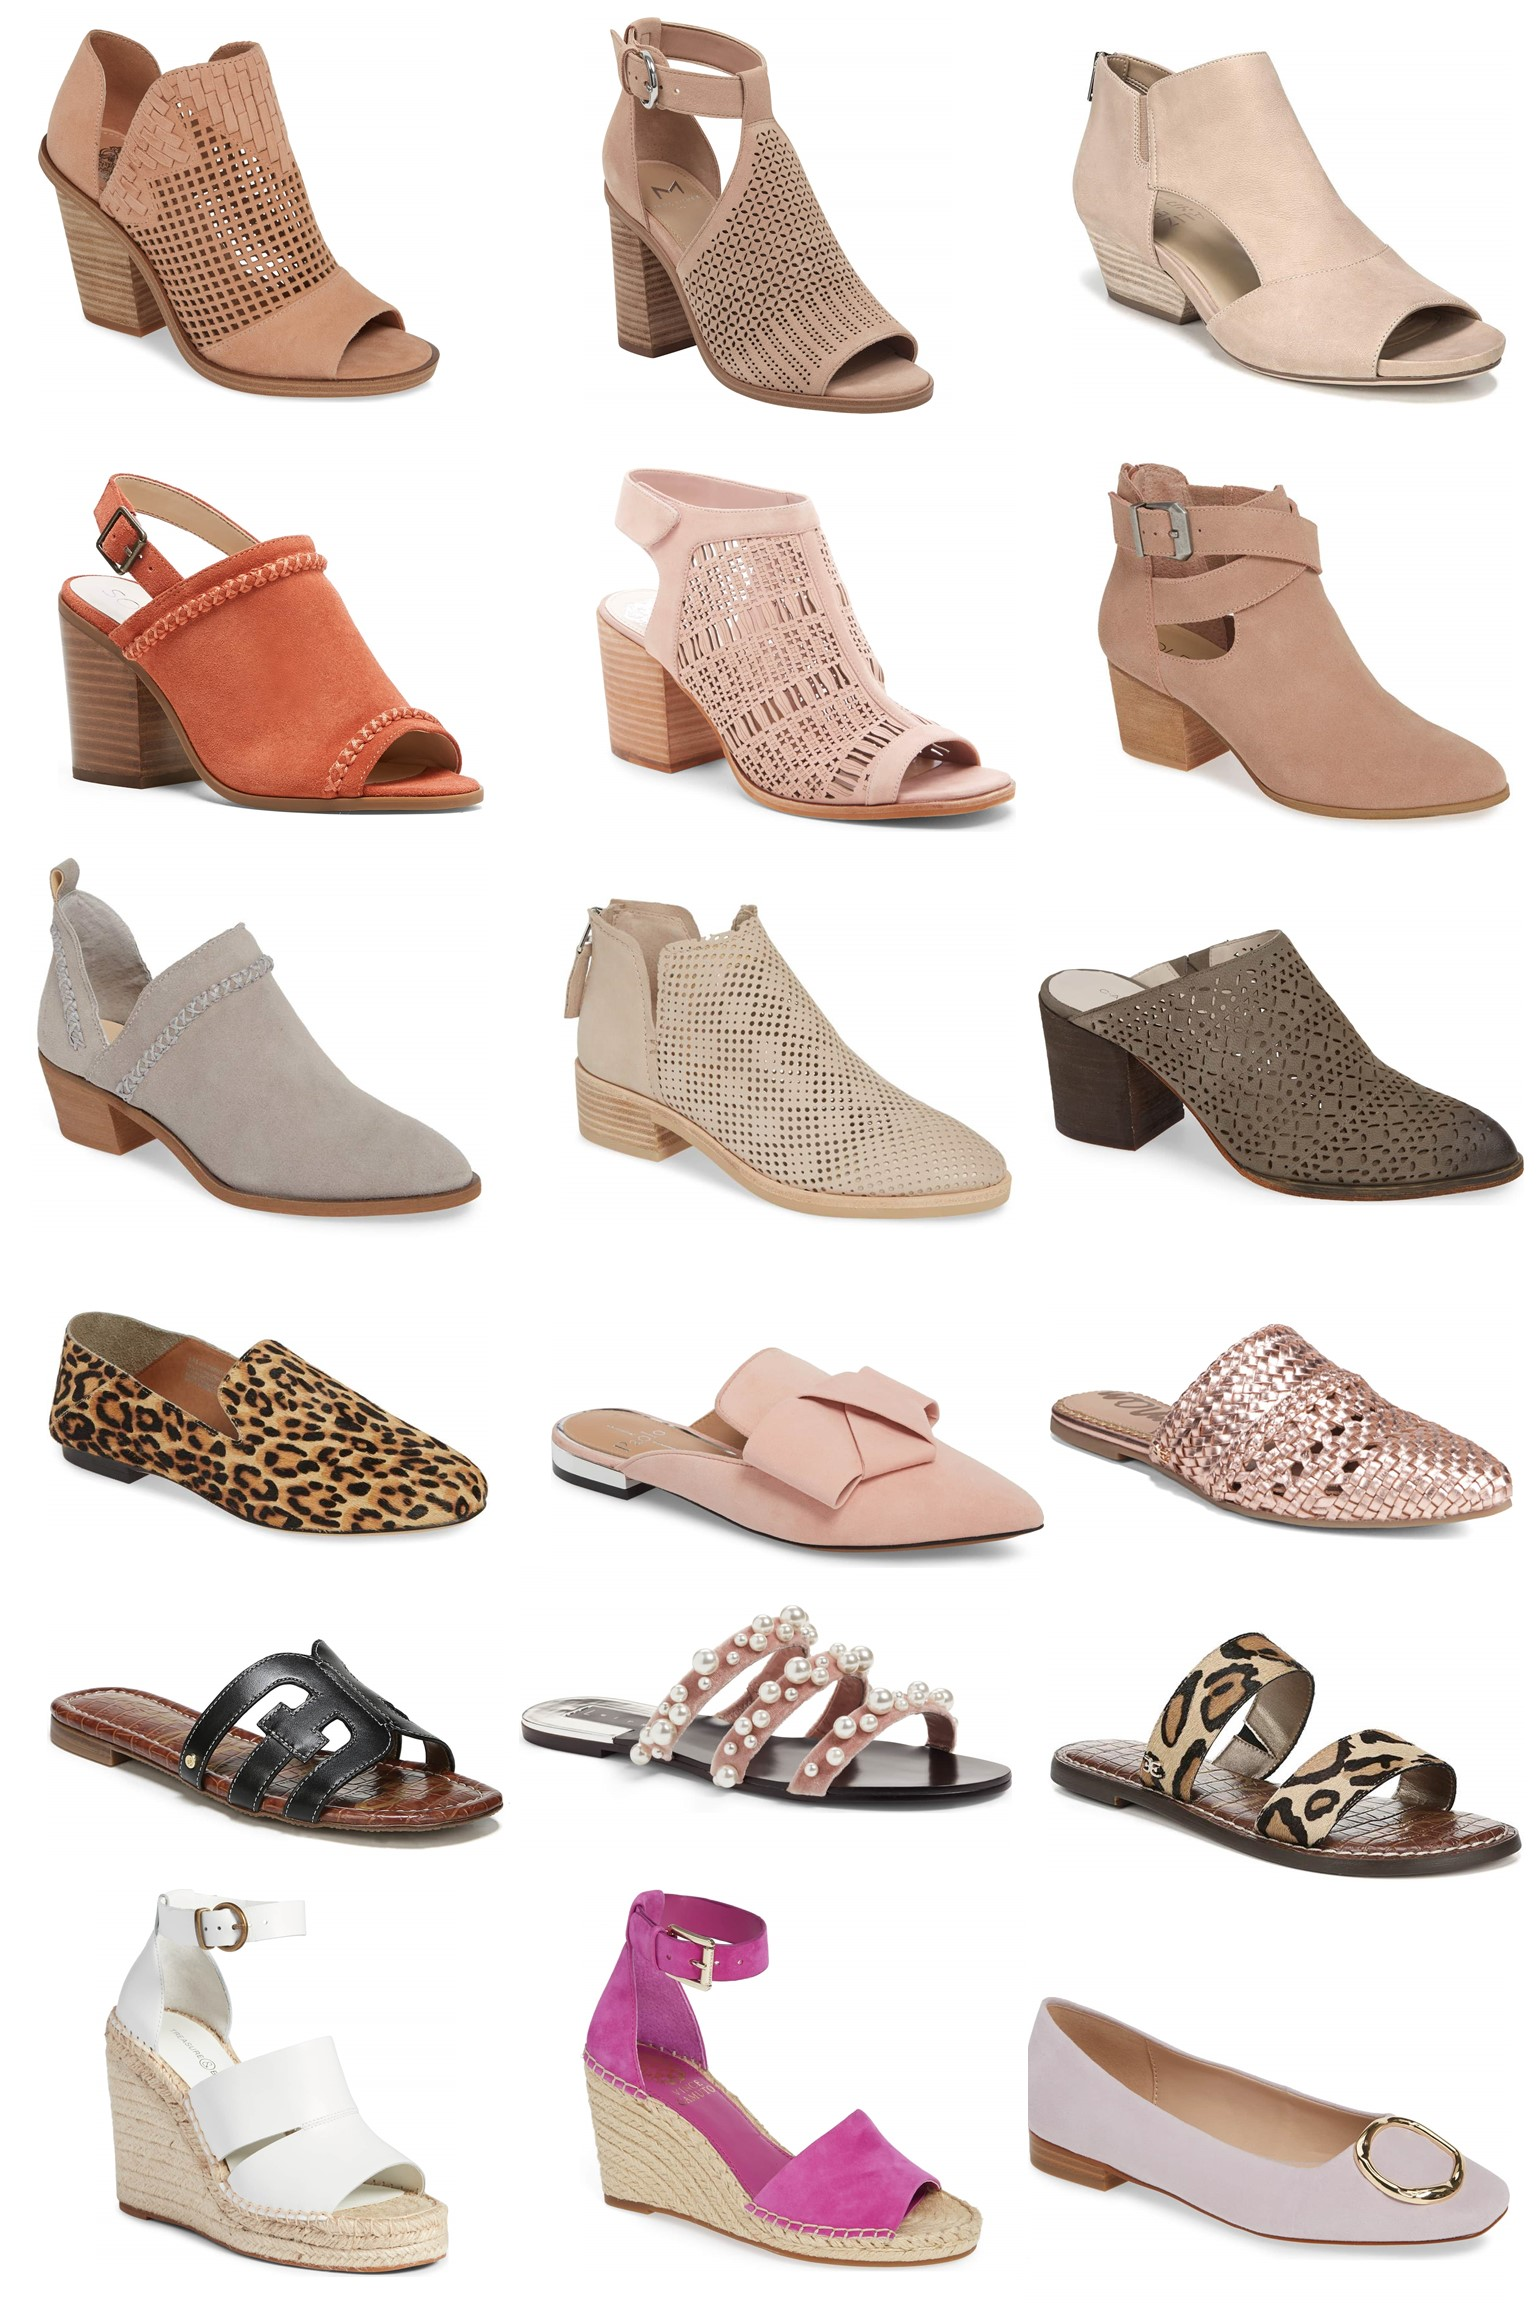 Spring Shoes - Dressed In Faith